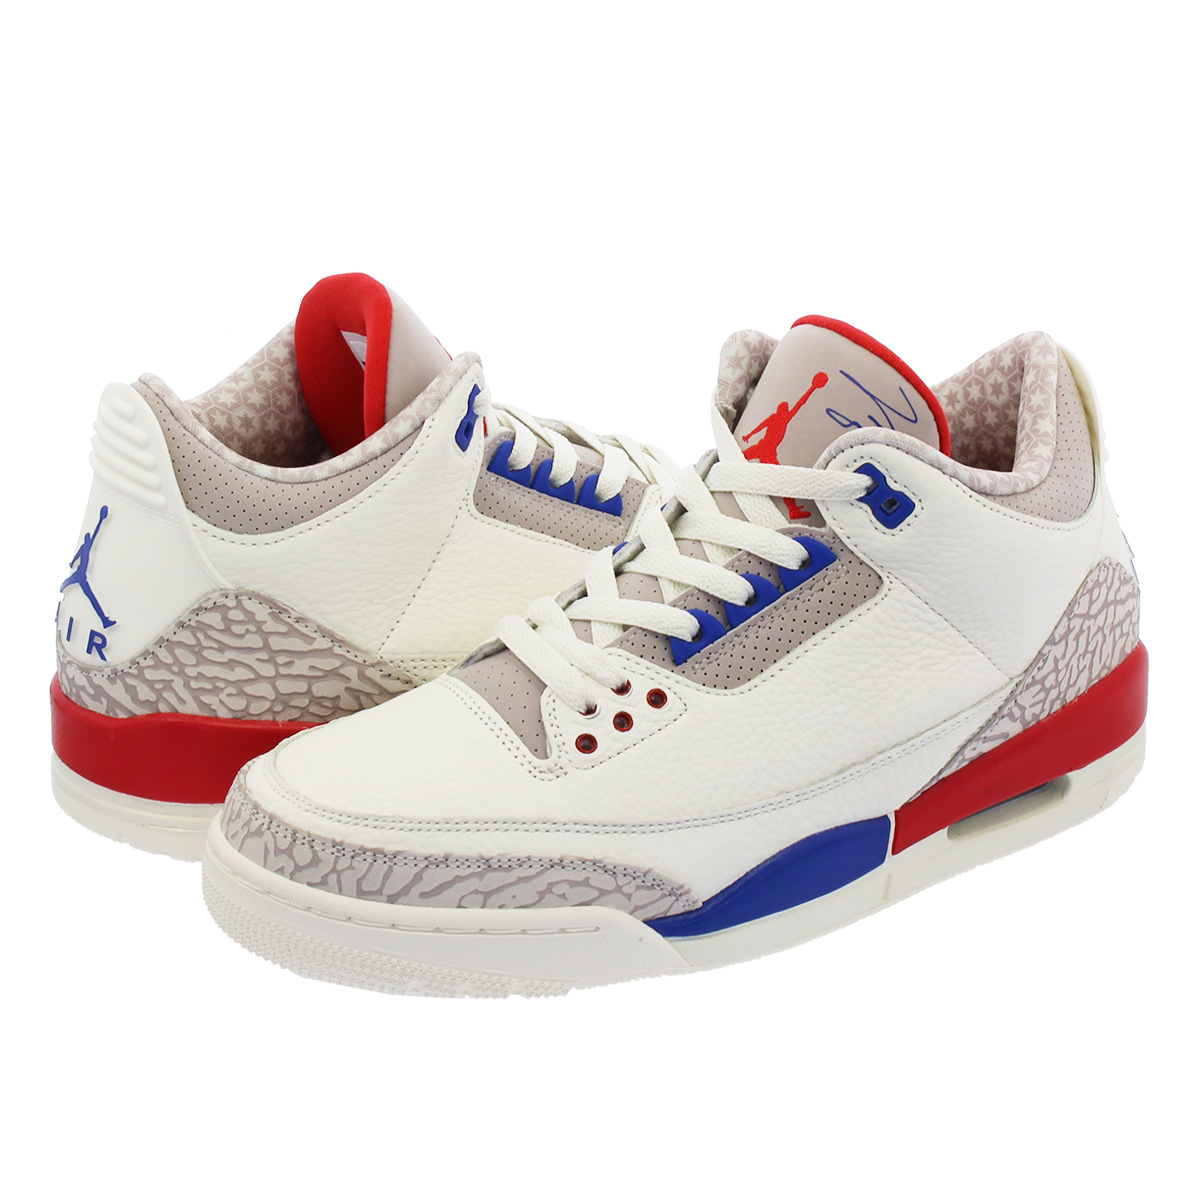 da90e337bb5df5 ... official nike air jordan 3 retro nike air jordan 3 nostalgic sail sport  royal fire red